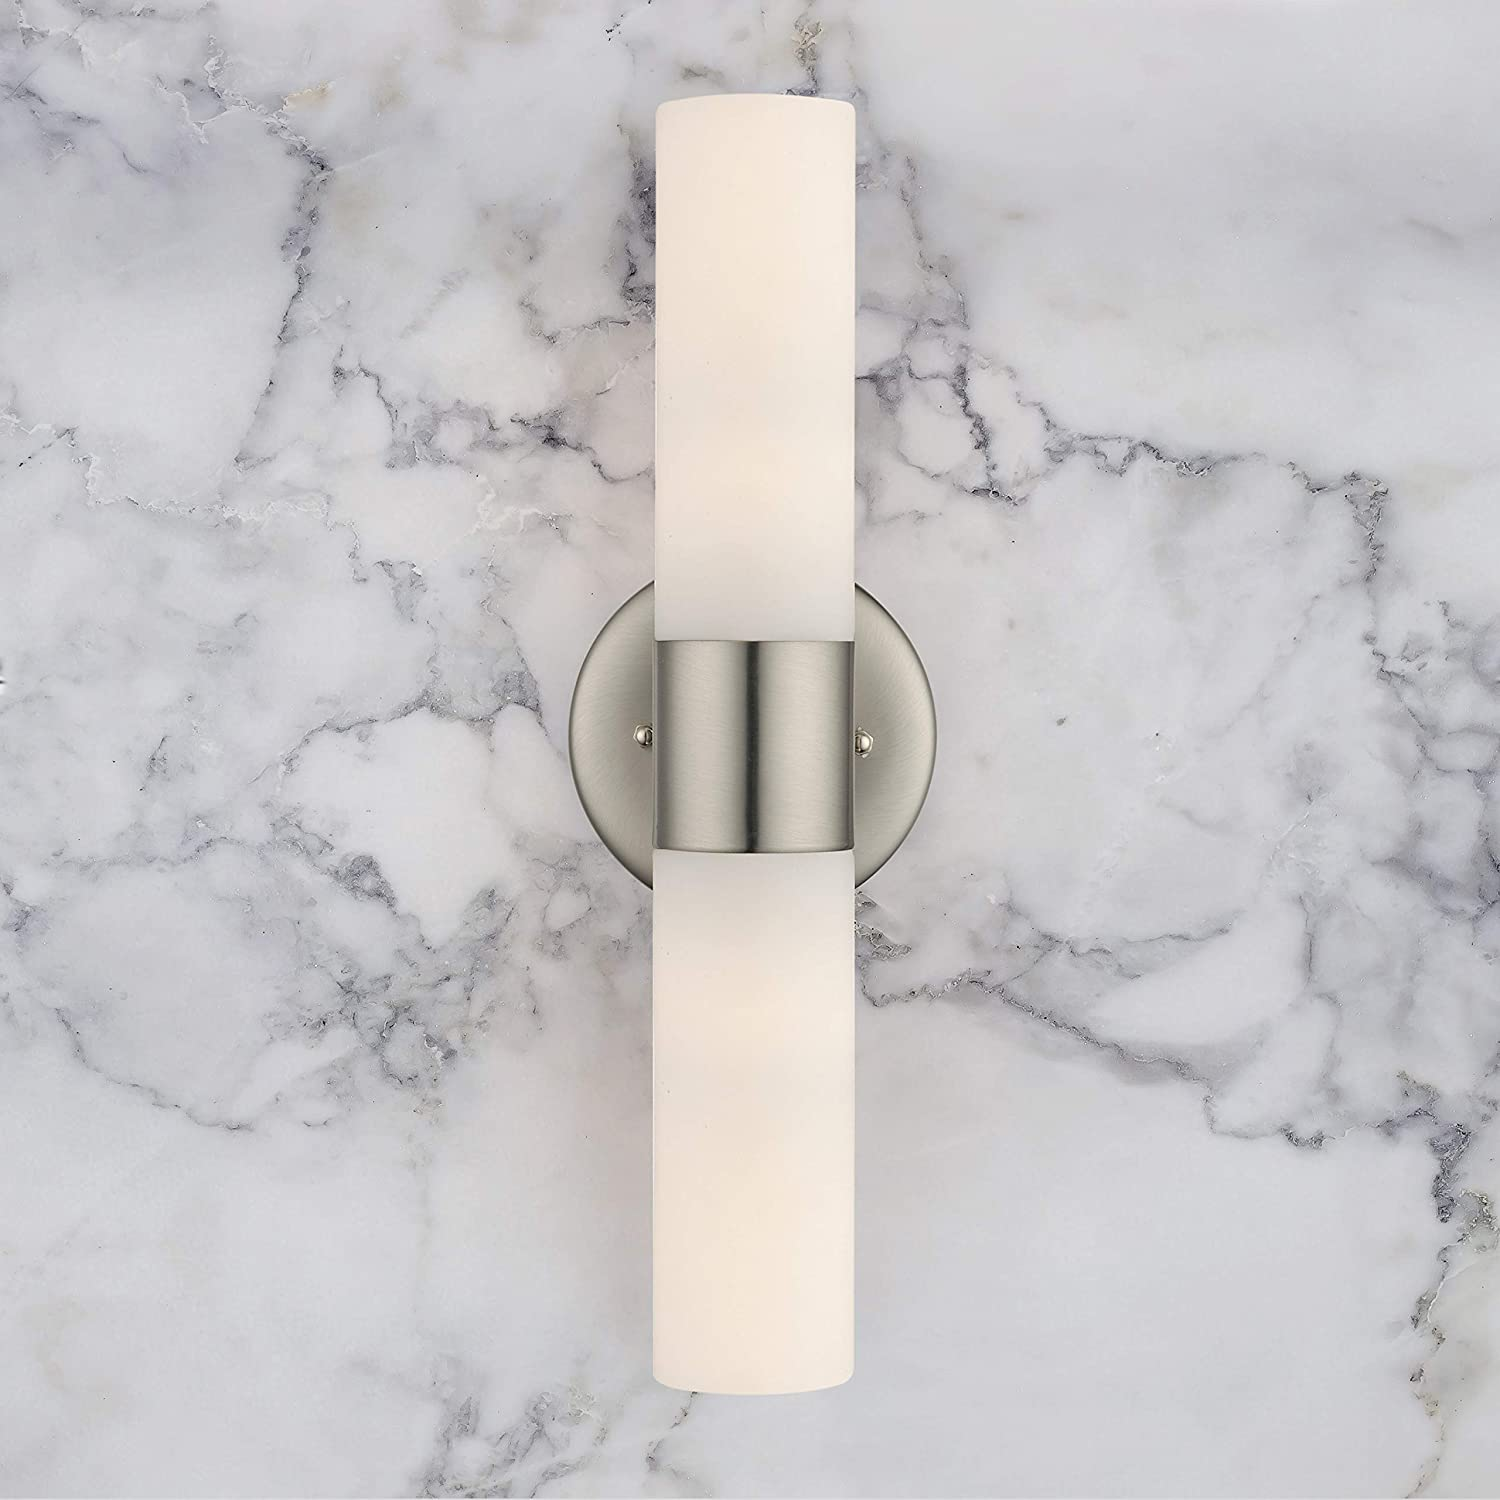 Satin Nickel Finish Bathroom Light Adjustable Vertical or Horizontal Wall Mounting